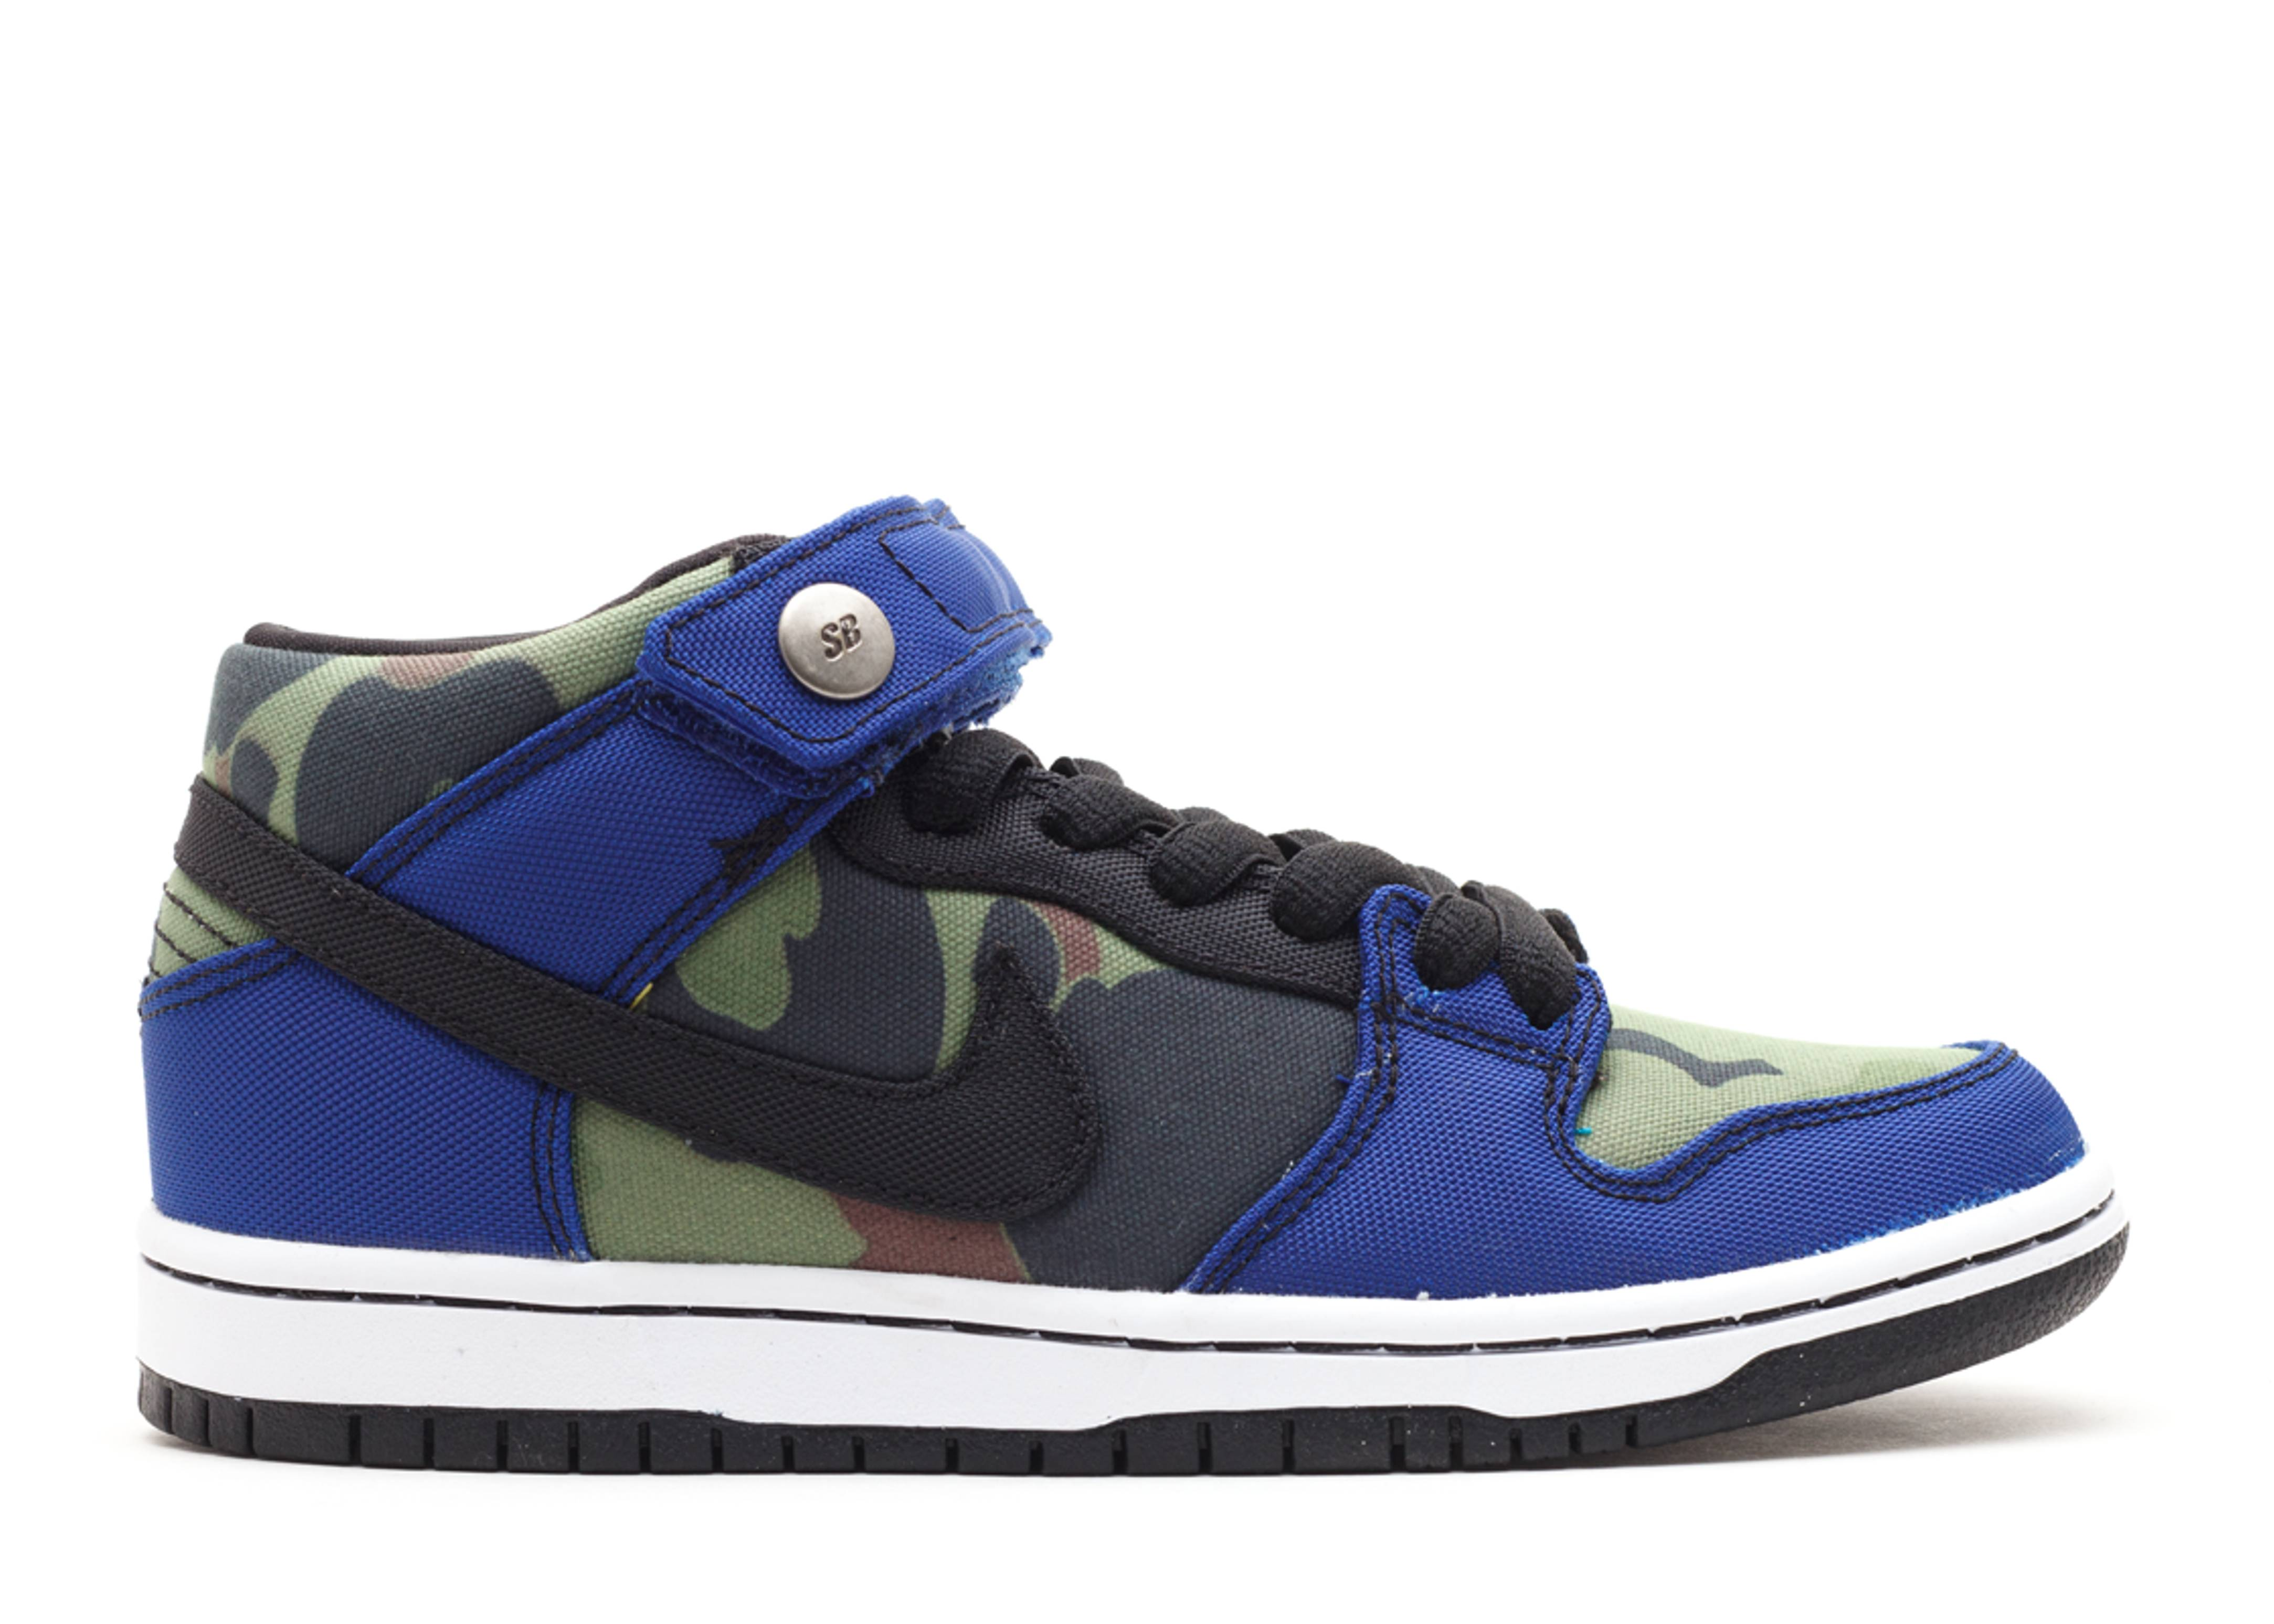 Nike Dunk SB Mid Made for Skate Sneakers (Old Royal/Black-White)